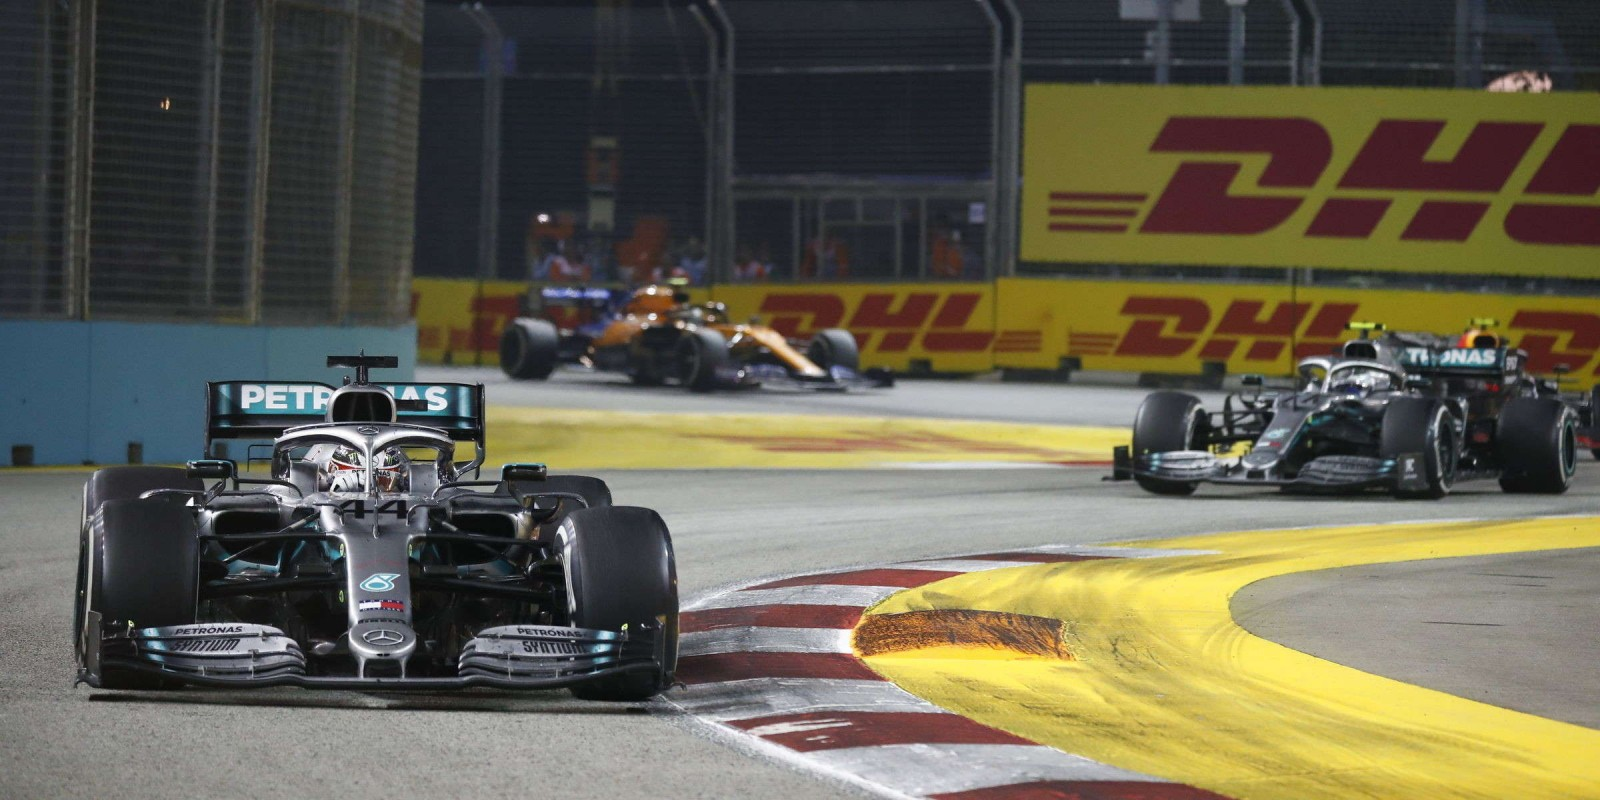 Images from the 2019 F1 Singapore Grand Prix